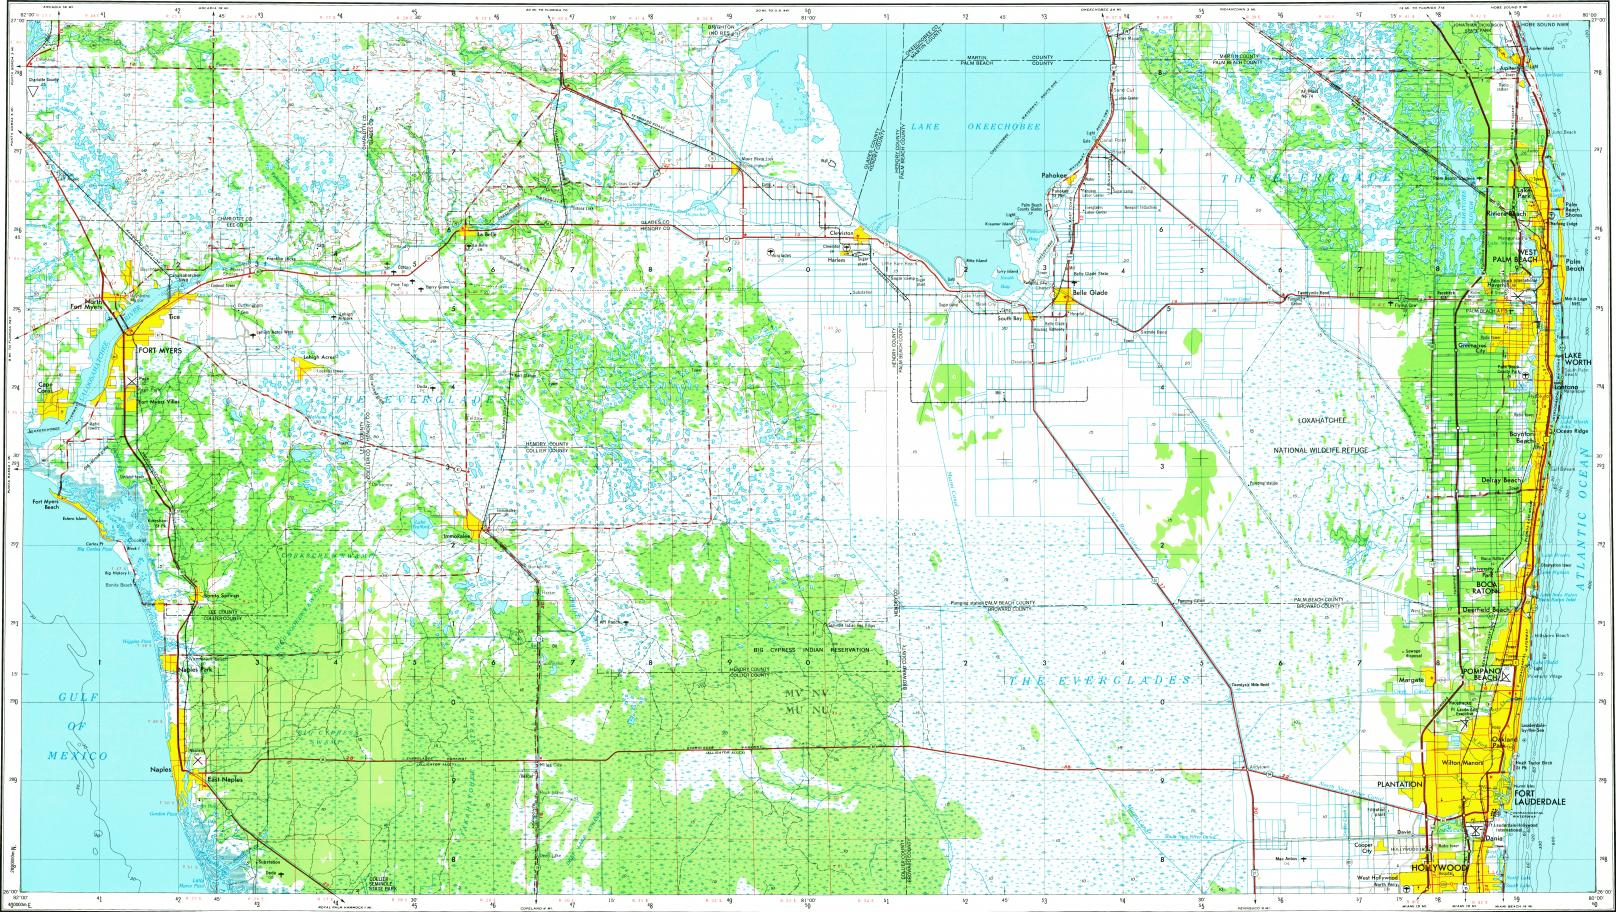 Download topographic map in area of Fort Lauderdale, West Palm Beach ...